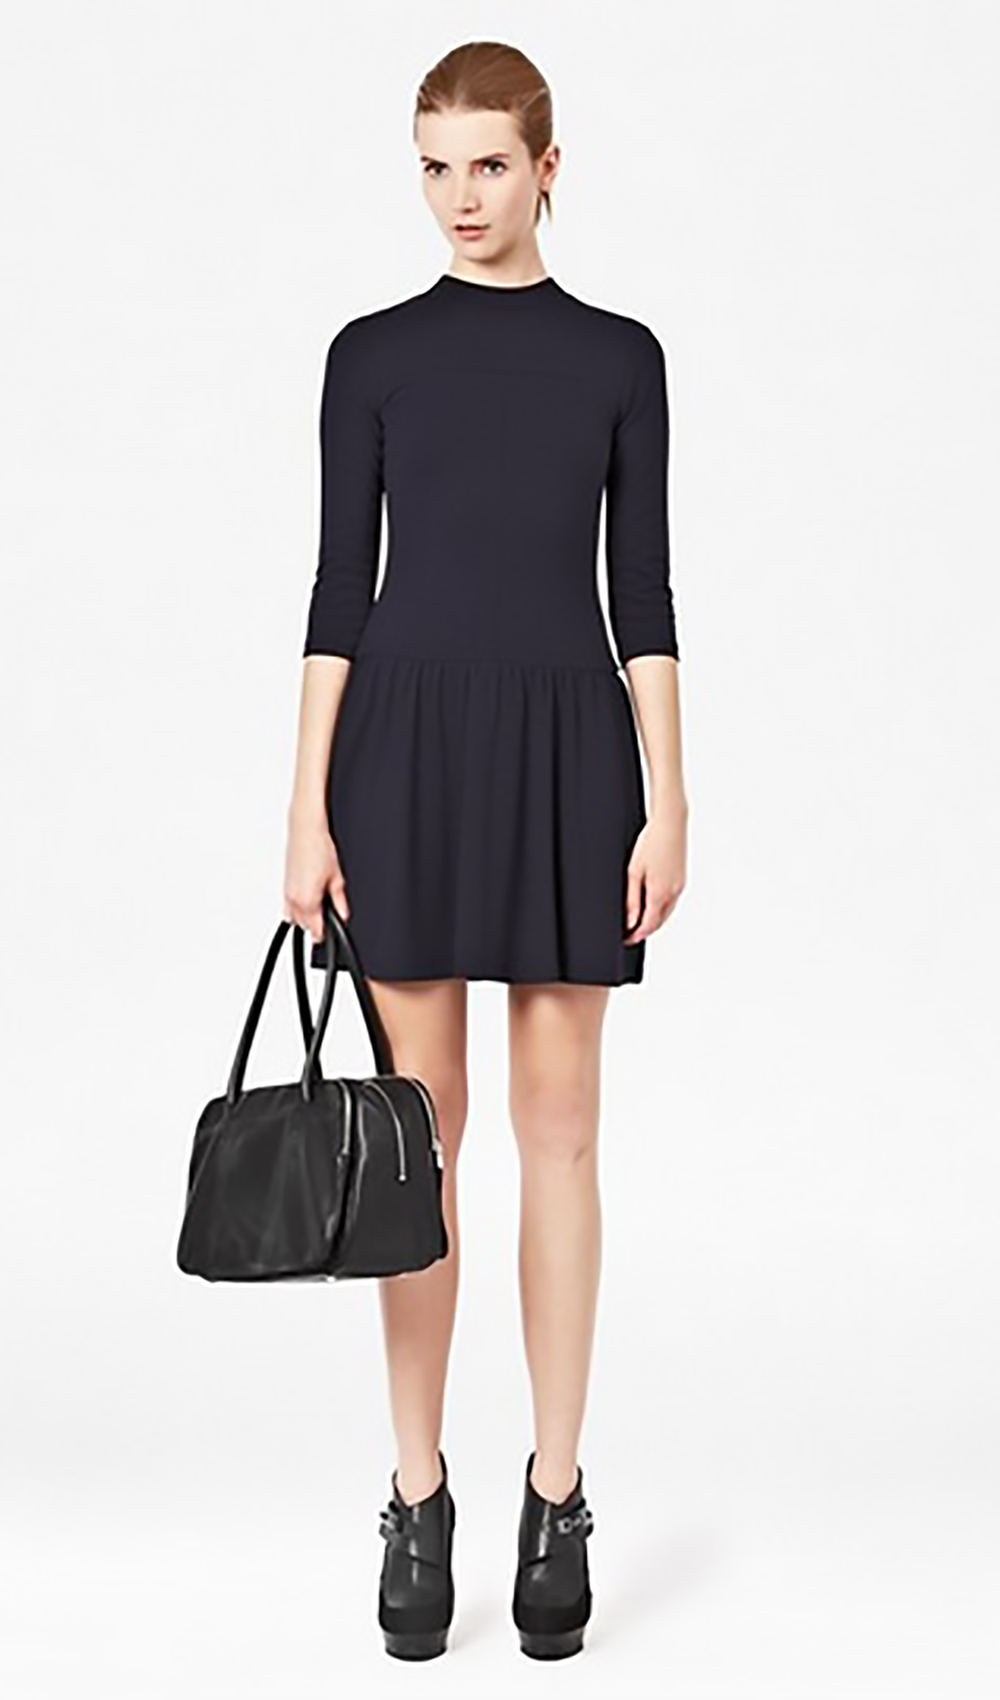 french connection eddie jersey drop waisted dress 1500.jpg